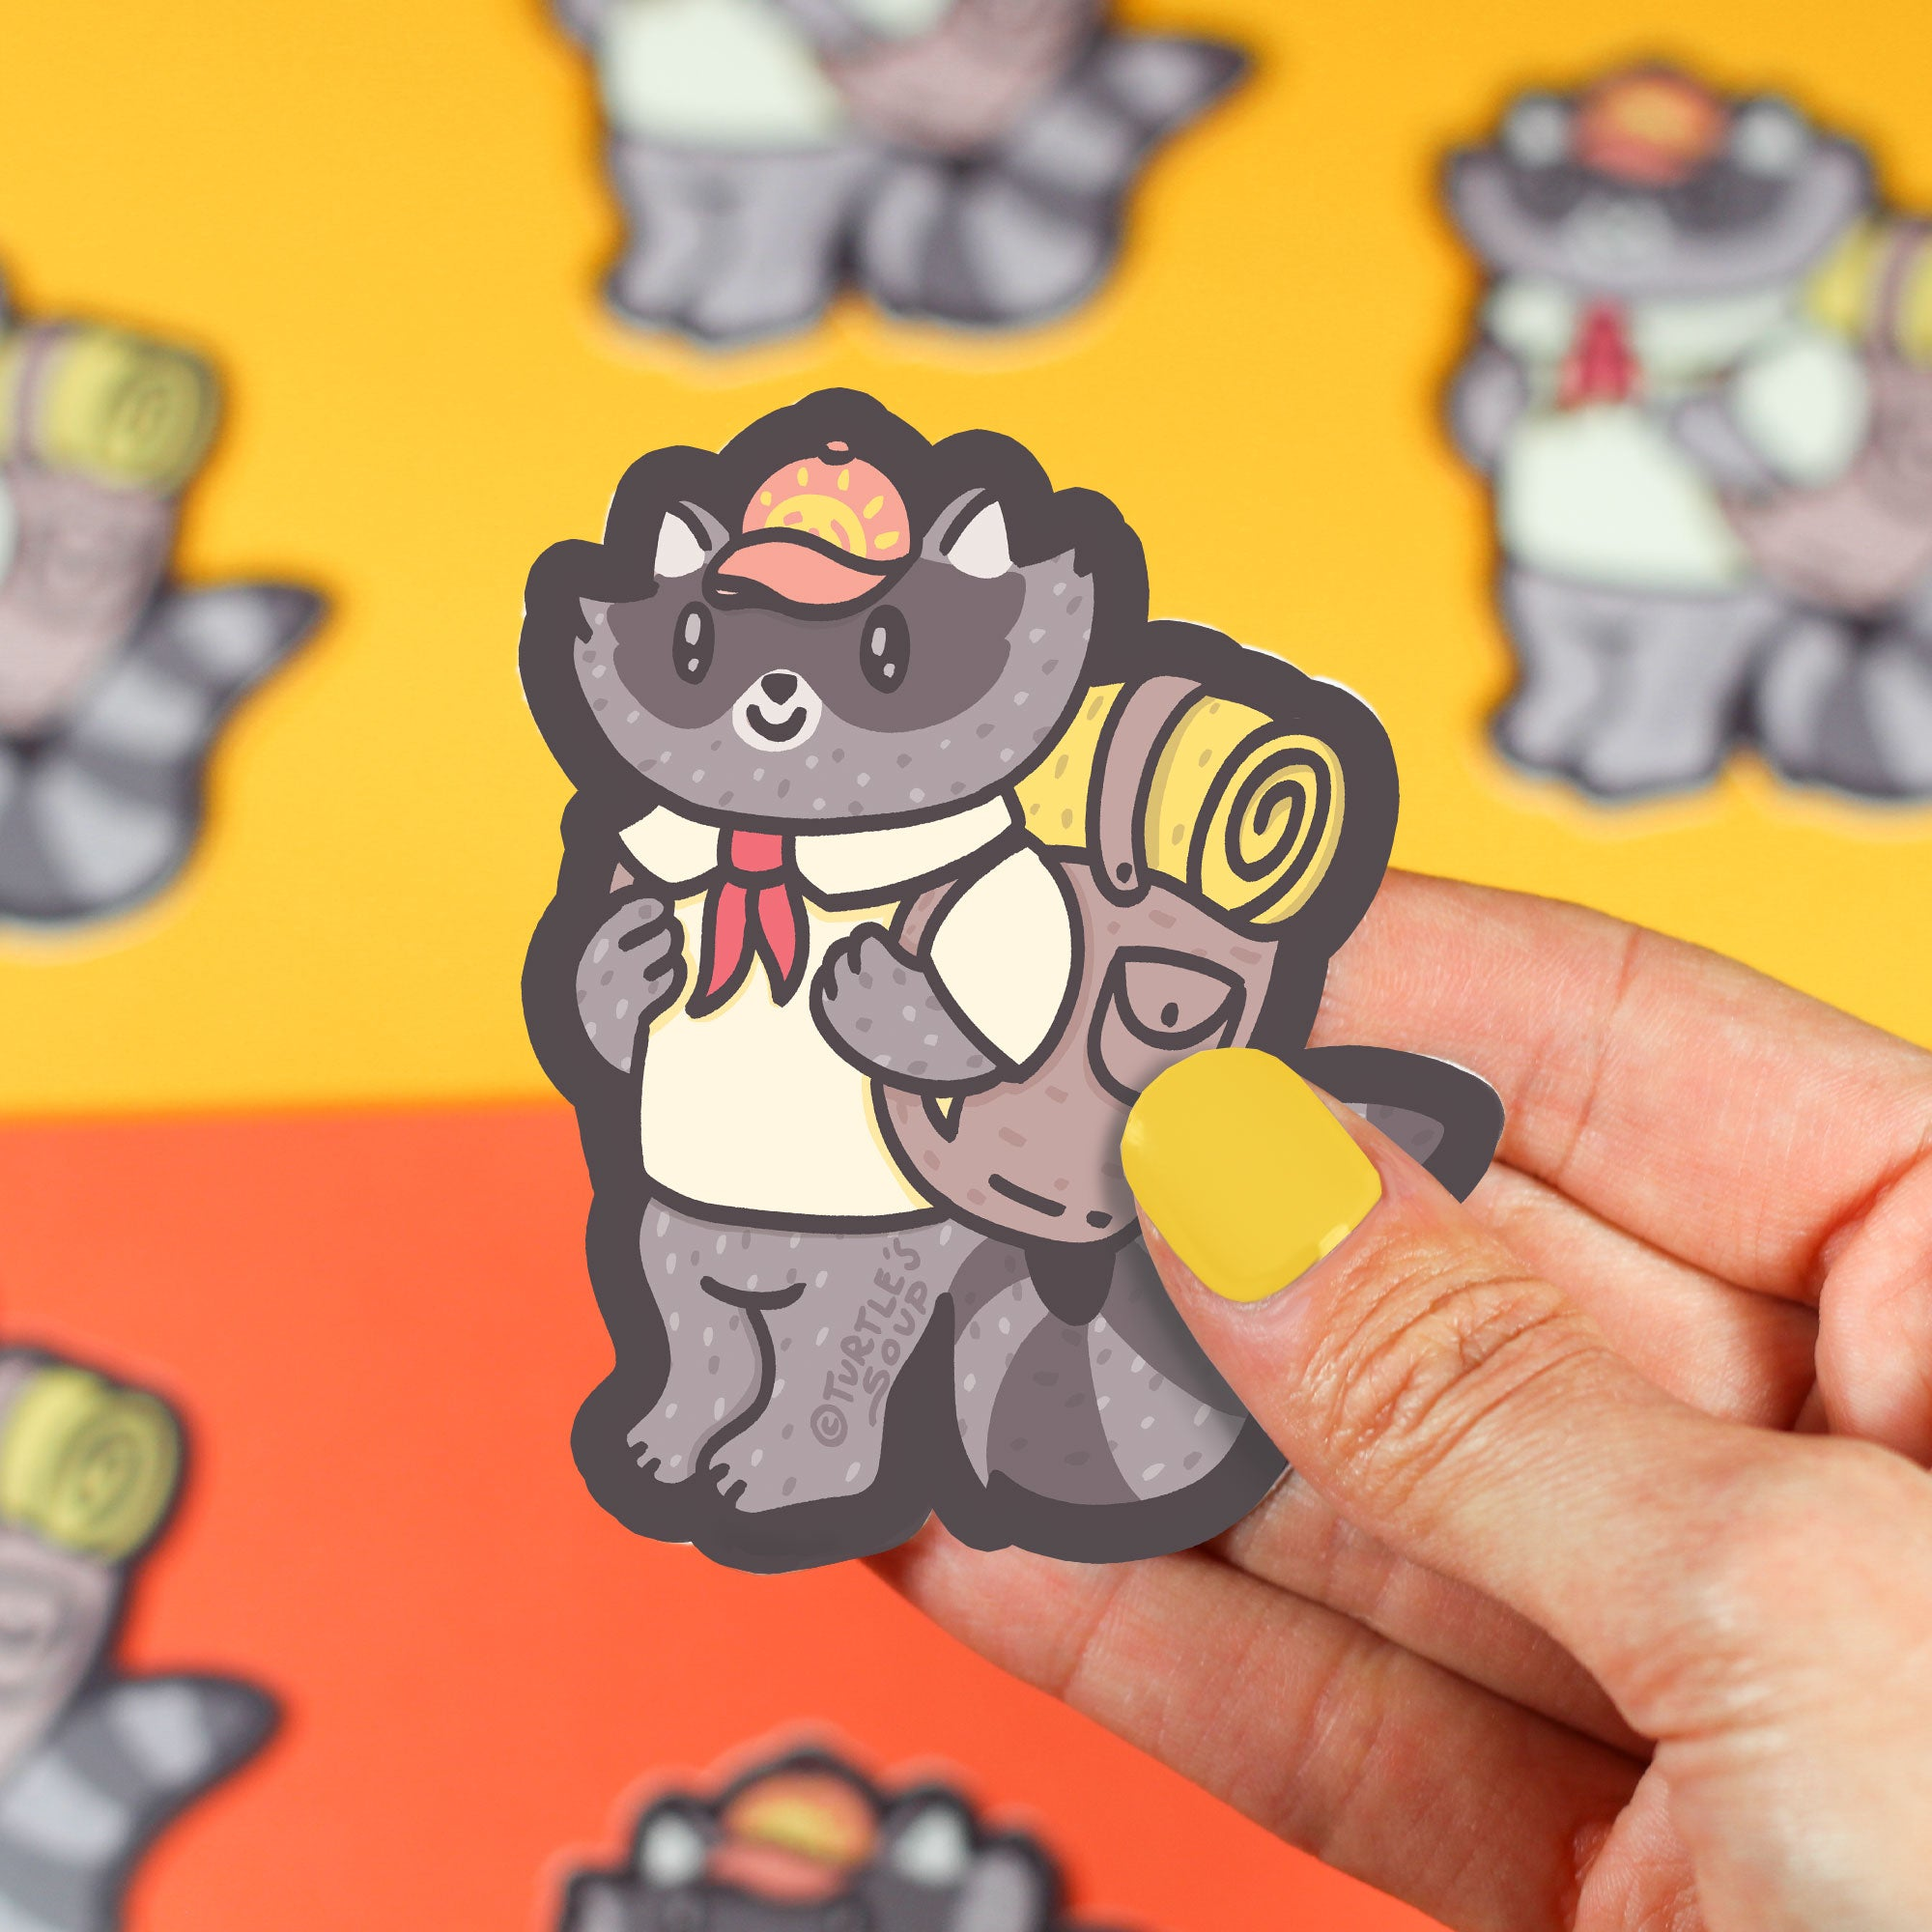 Adventurer Raccoon Vinyl Sticker